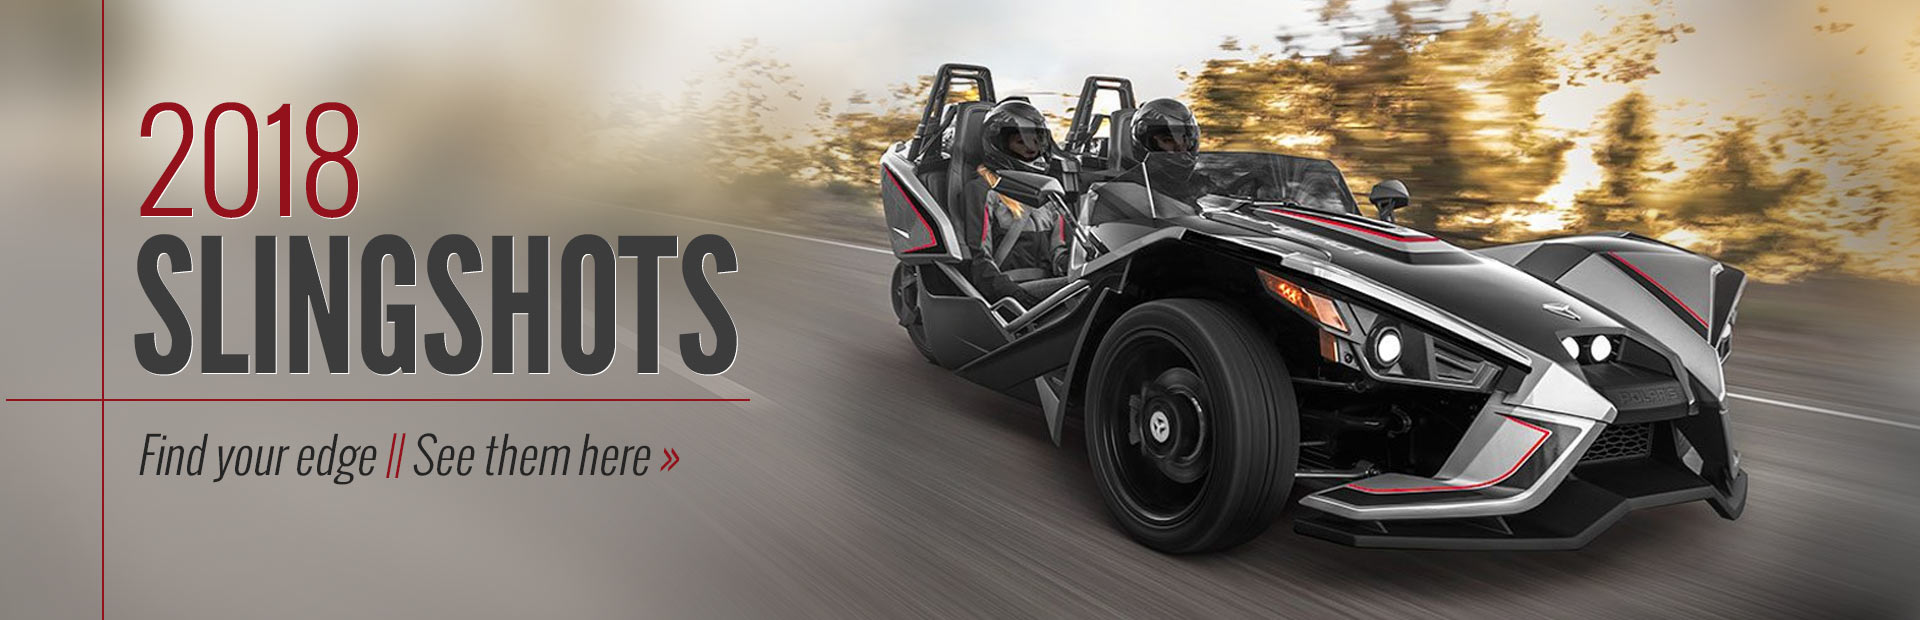 2018 Slingshots: Click here to view the models.